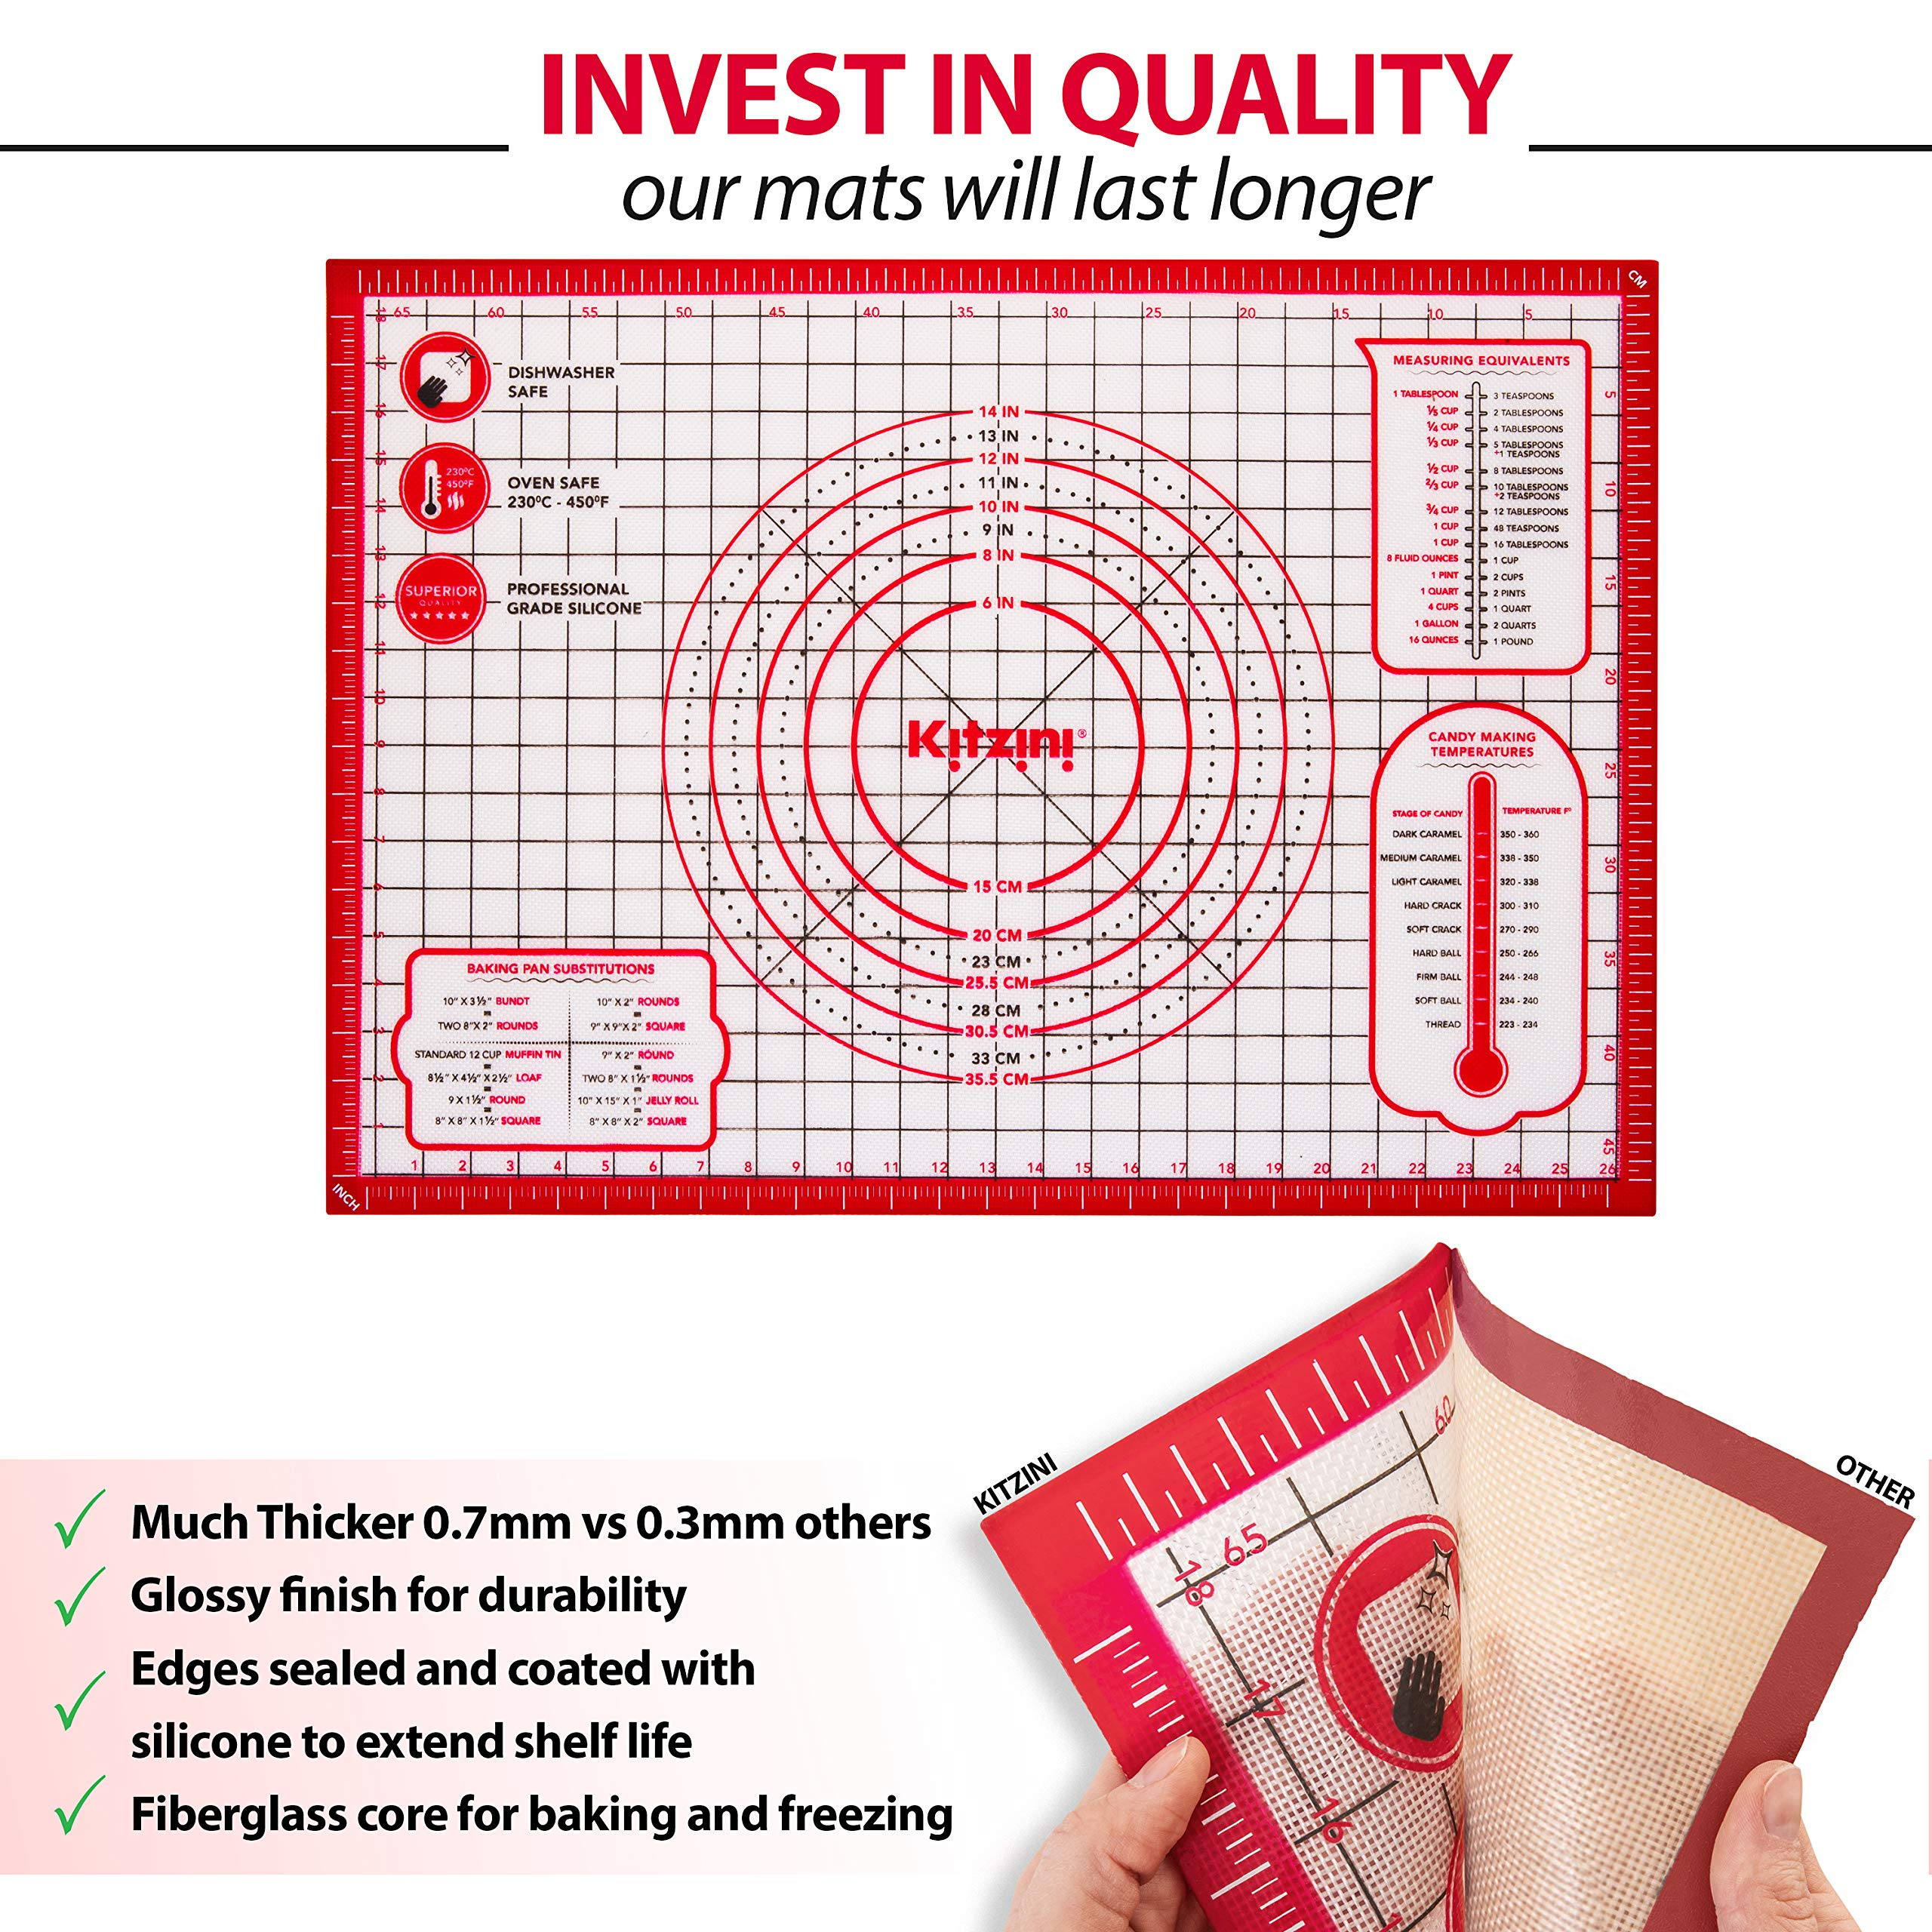 Pastry Mat Silicone Non Slip - Extra Large Thick Non Stick Silicone Baking Mat For Rolling Dough Pie Crust Fondant Pizza and Cookies - Heavy Duty Easy Clean Kneading Mat With Measurements - 20'' x 28'' by Kitzini (Image #3)